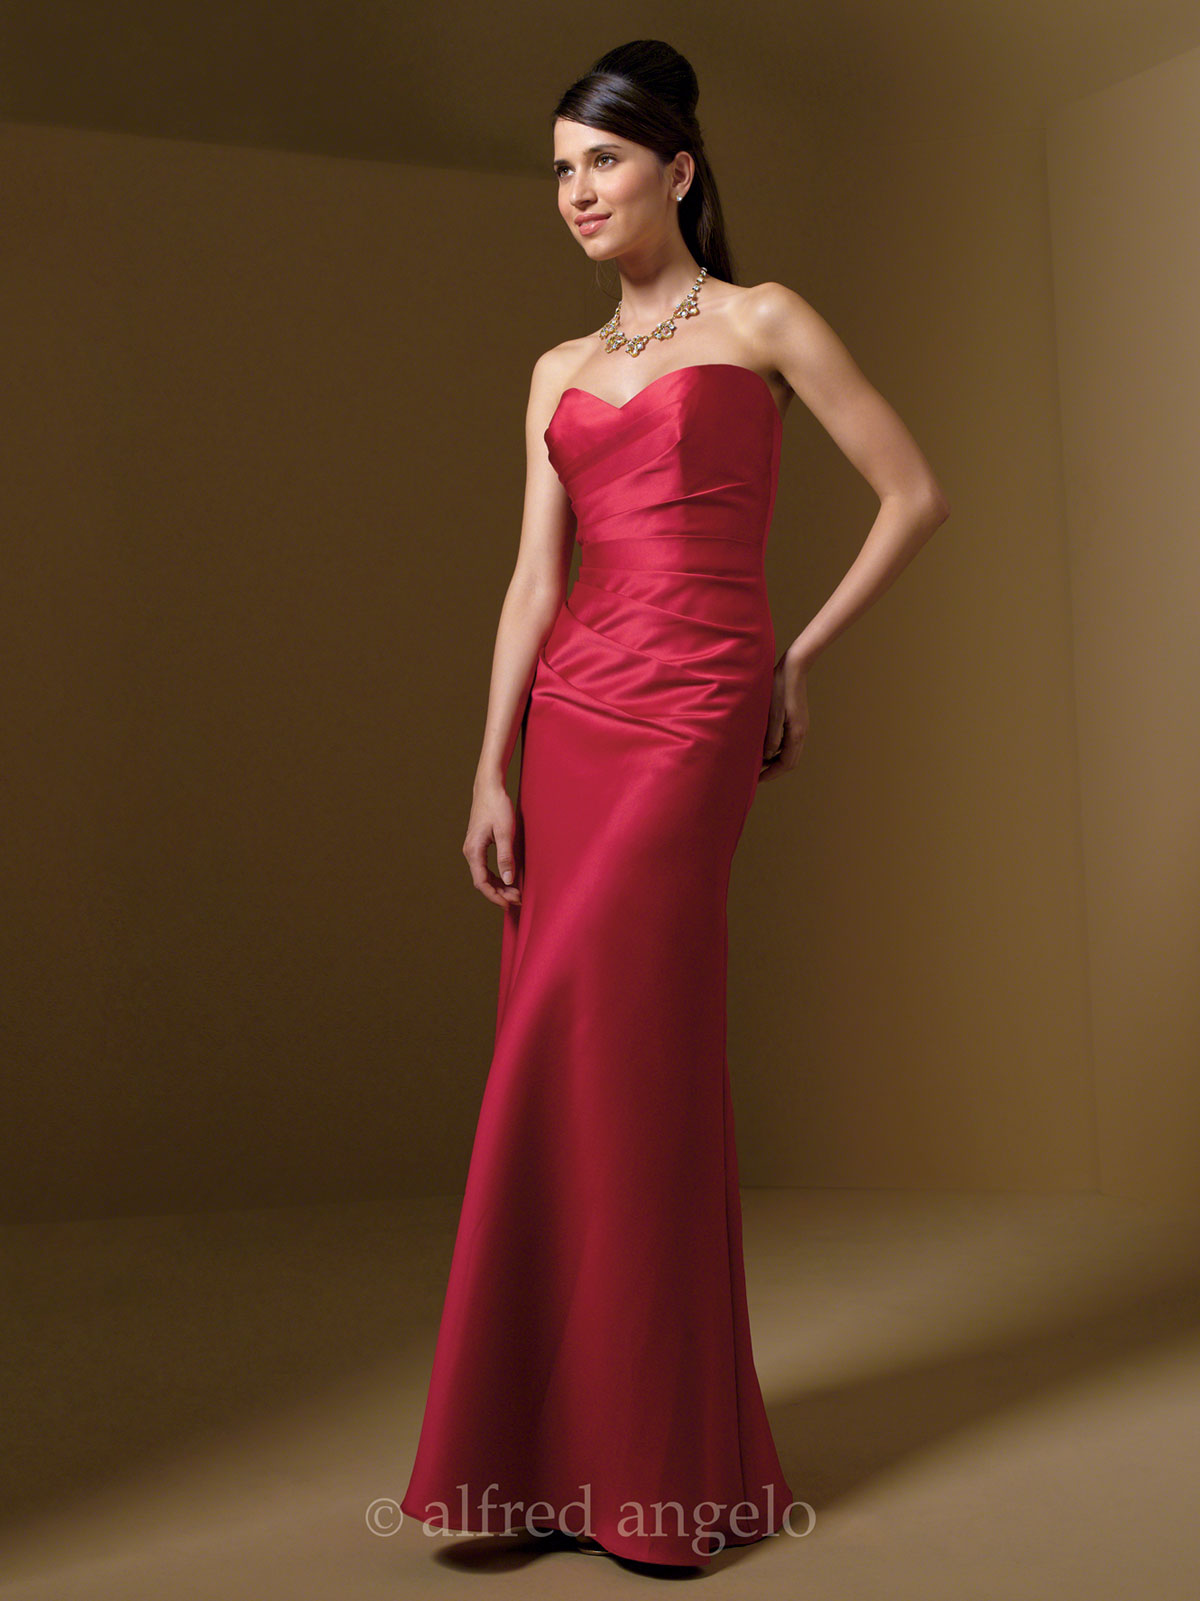 Strapless bridesmaid dress alfred angelo 7041 dimitradesigns strapless sweetheart bridesmaid dress alfred angelo 7041 ombrellifo Image collections